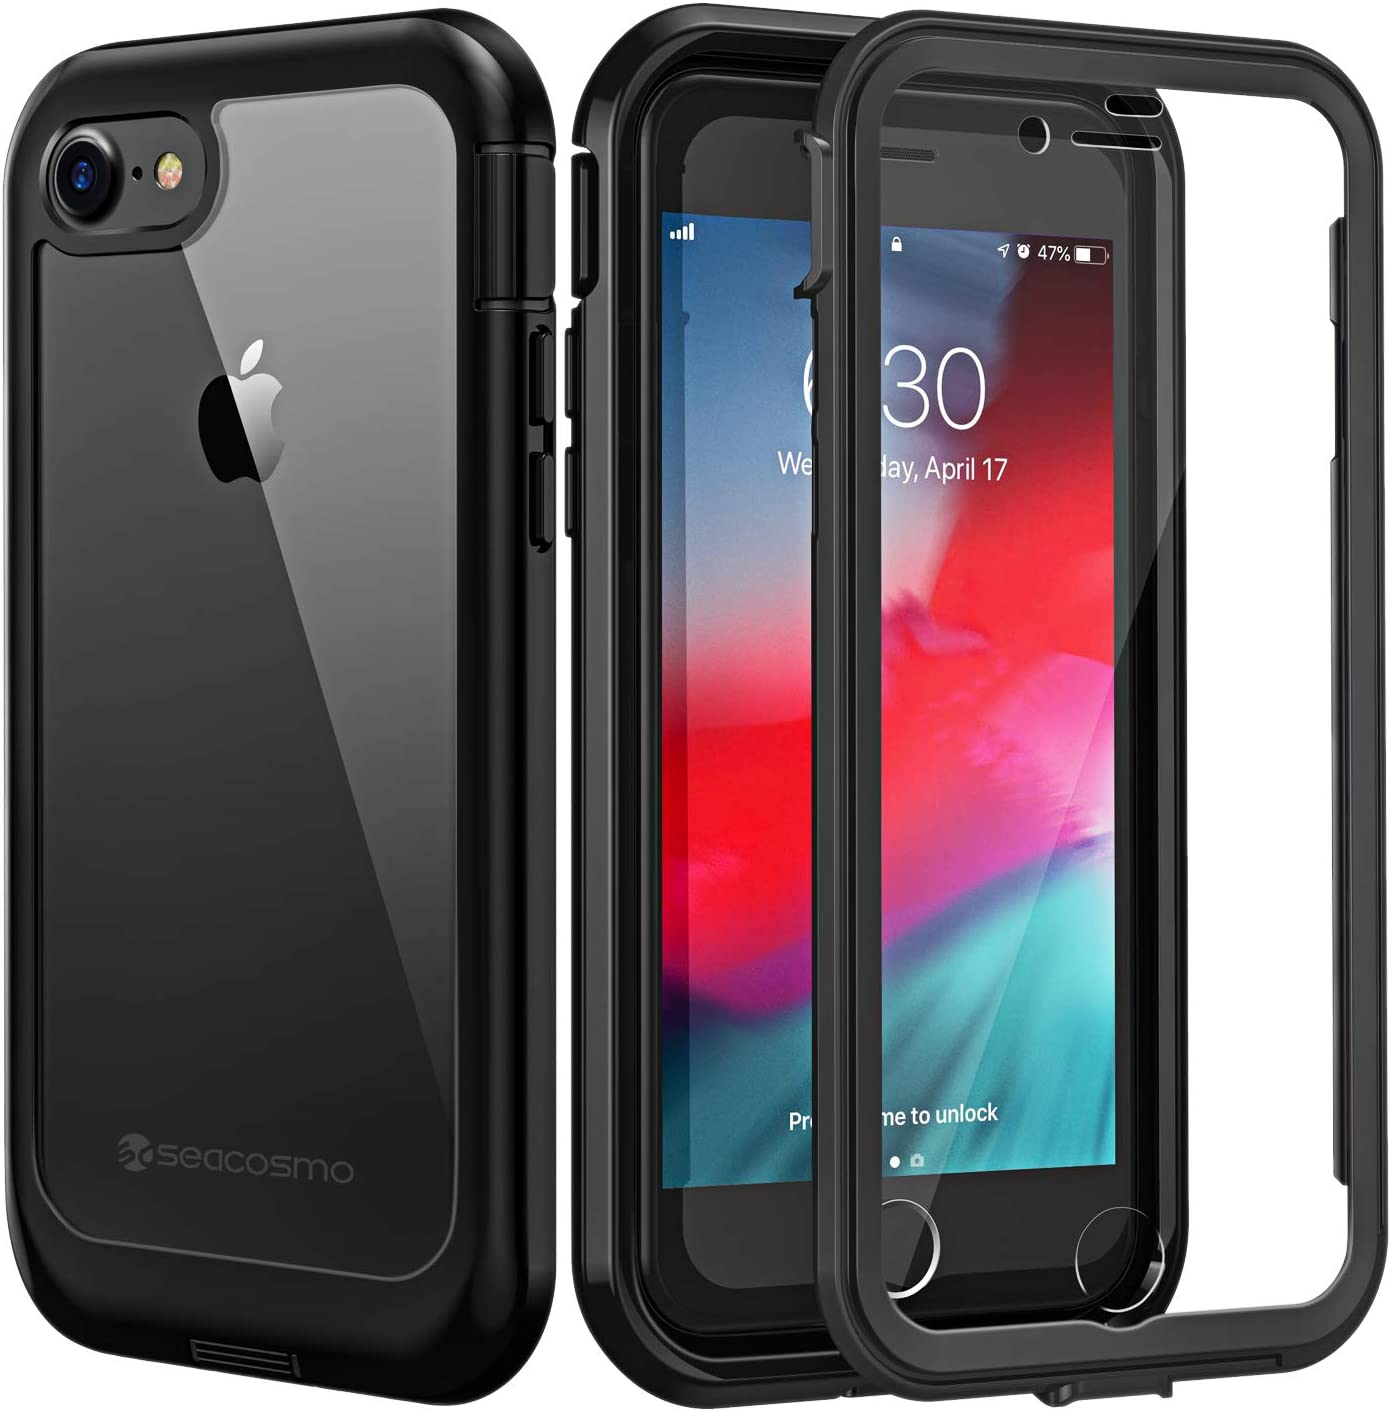 Amazon Com Seacosmo Iphone Se 2020 Case Iphone 7 Case Iphone 8 Case Dual Layer Clear Case With Built In Screen Protector Full Body Protective Bumper Case For Iphone 8 7 Se 2020 Clear Black